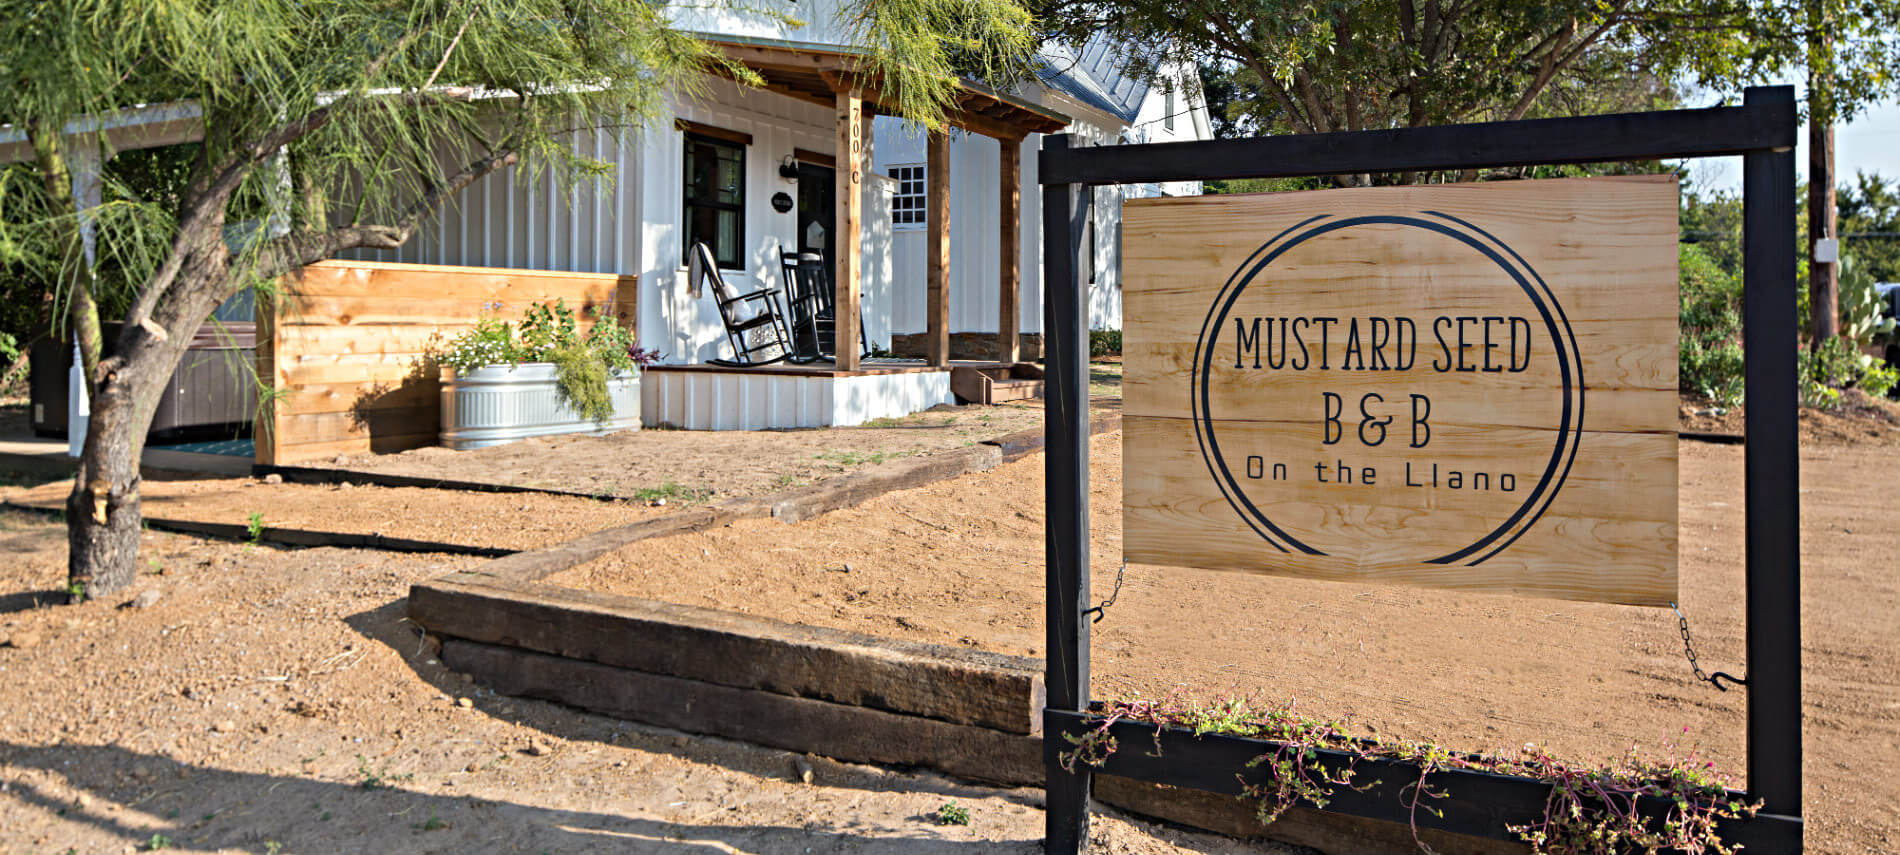 1. Rustic Mustard Seed B&B on the Llano sign with view of white cottages in the background